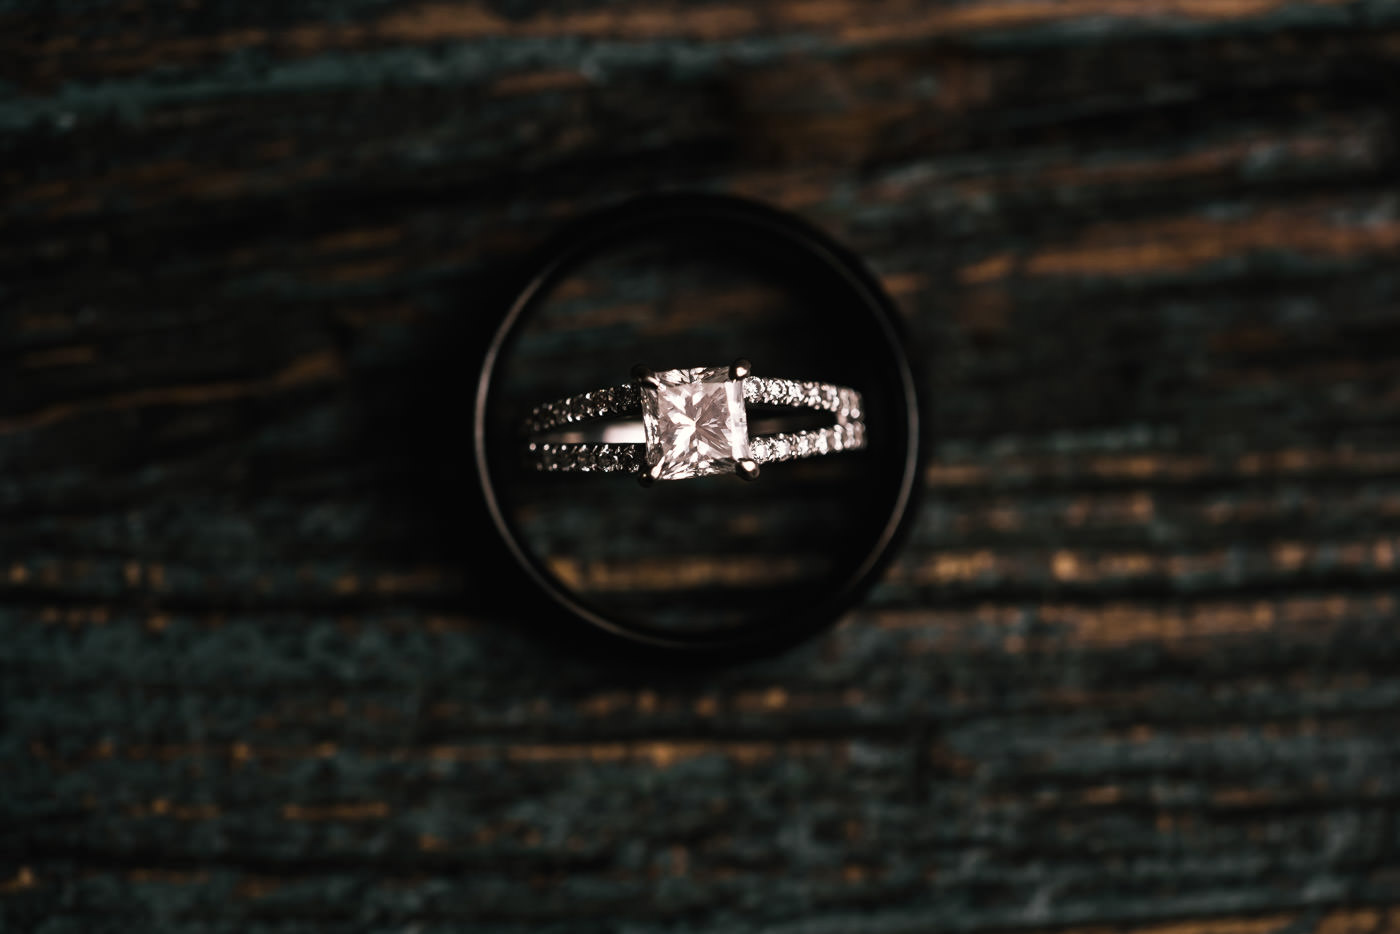 Overhead photo of a diamond wedding ring sitting inside the grooms ring.